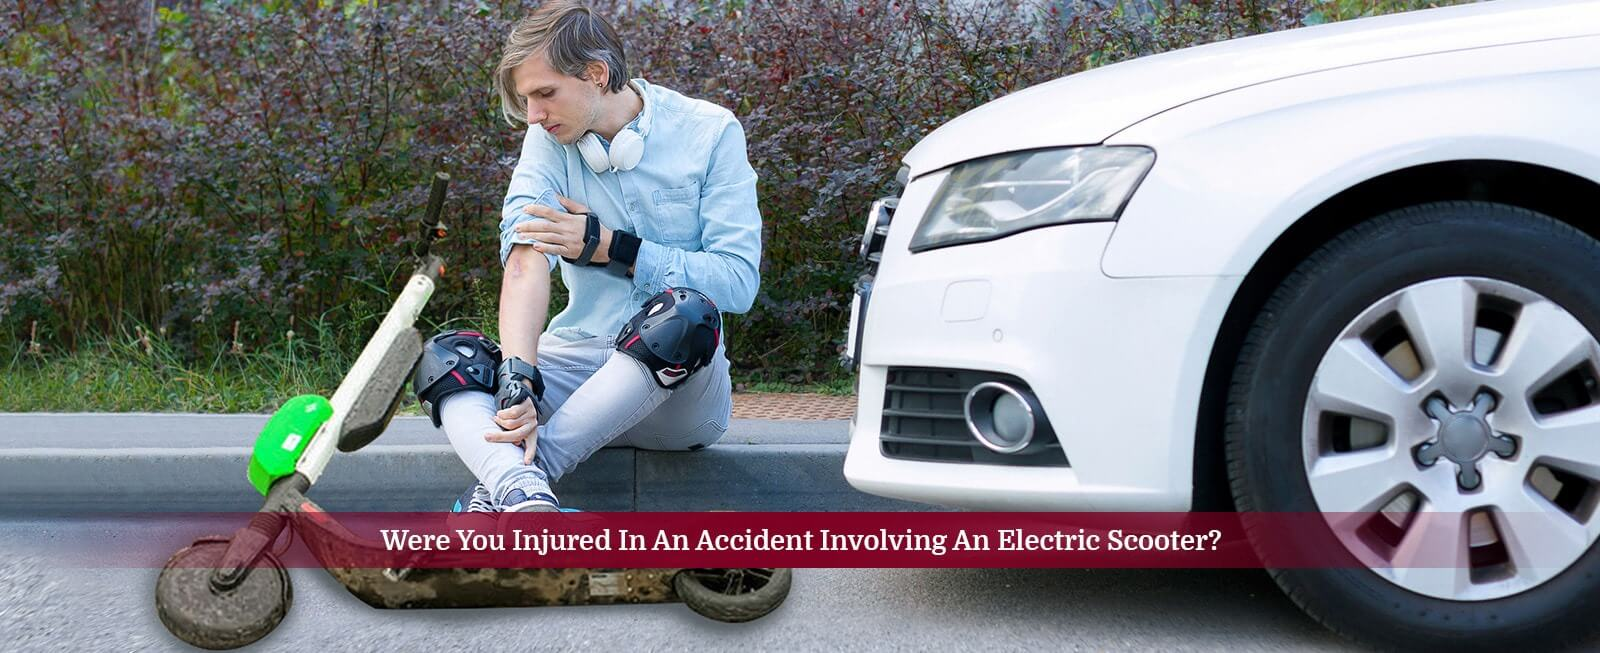 Were You Injured In An Accident Involving An Electric Scooter?